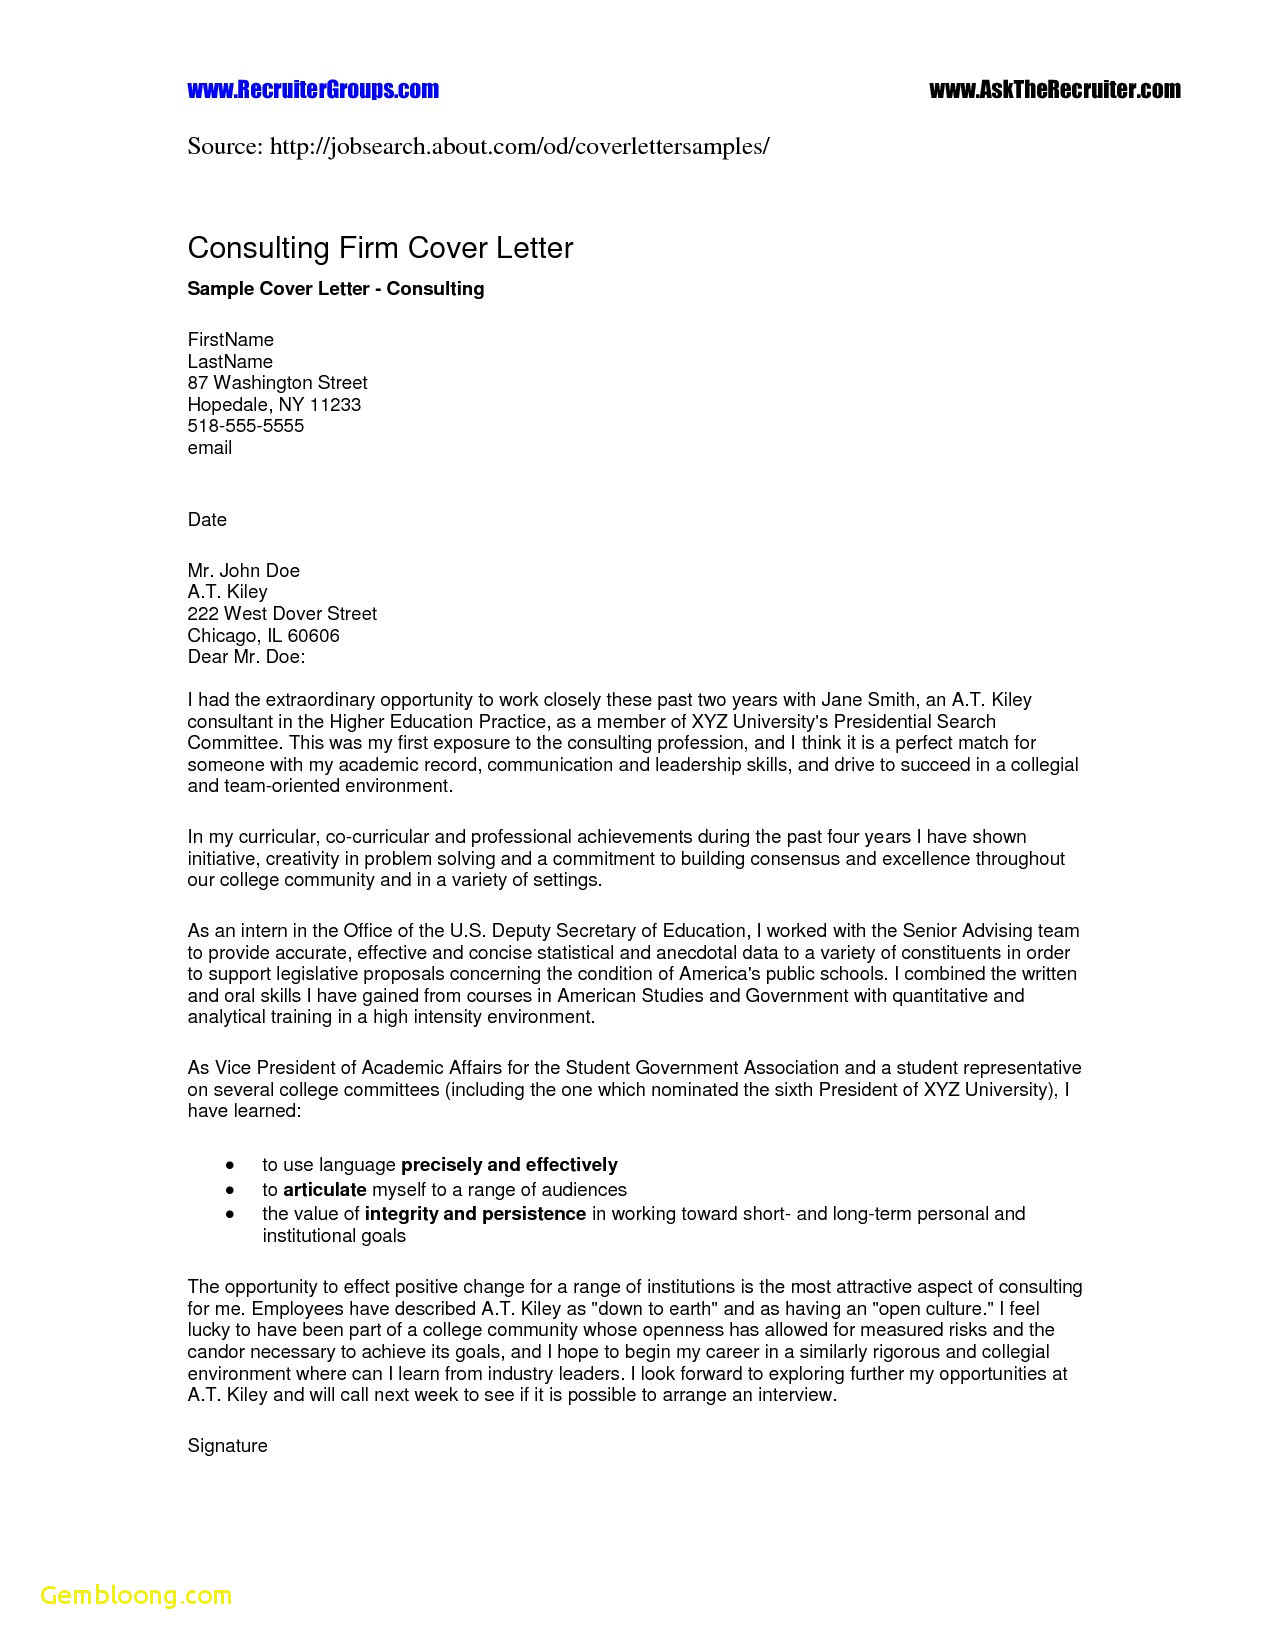 Business Cover Letter Template Download - Students Resume Templates Free Download First Job Resume Templates